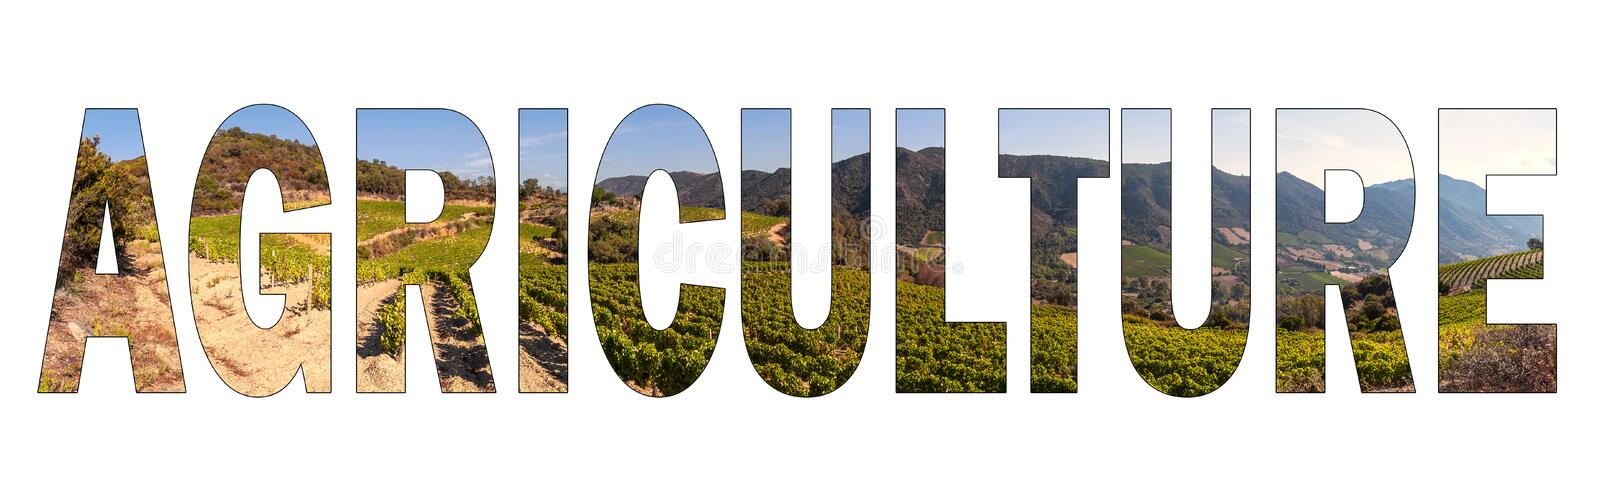 Written AGRICULTURE with background a hilly vineyard of Sardinia, Italy. royalty free stock photography